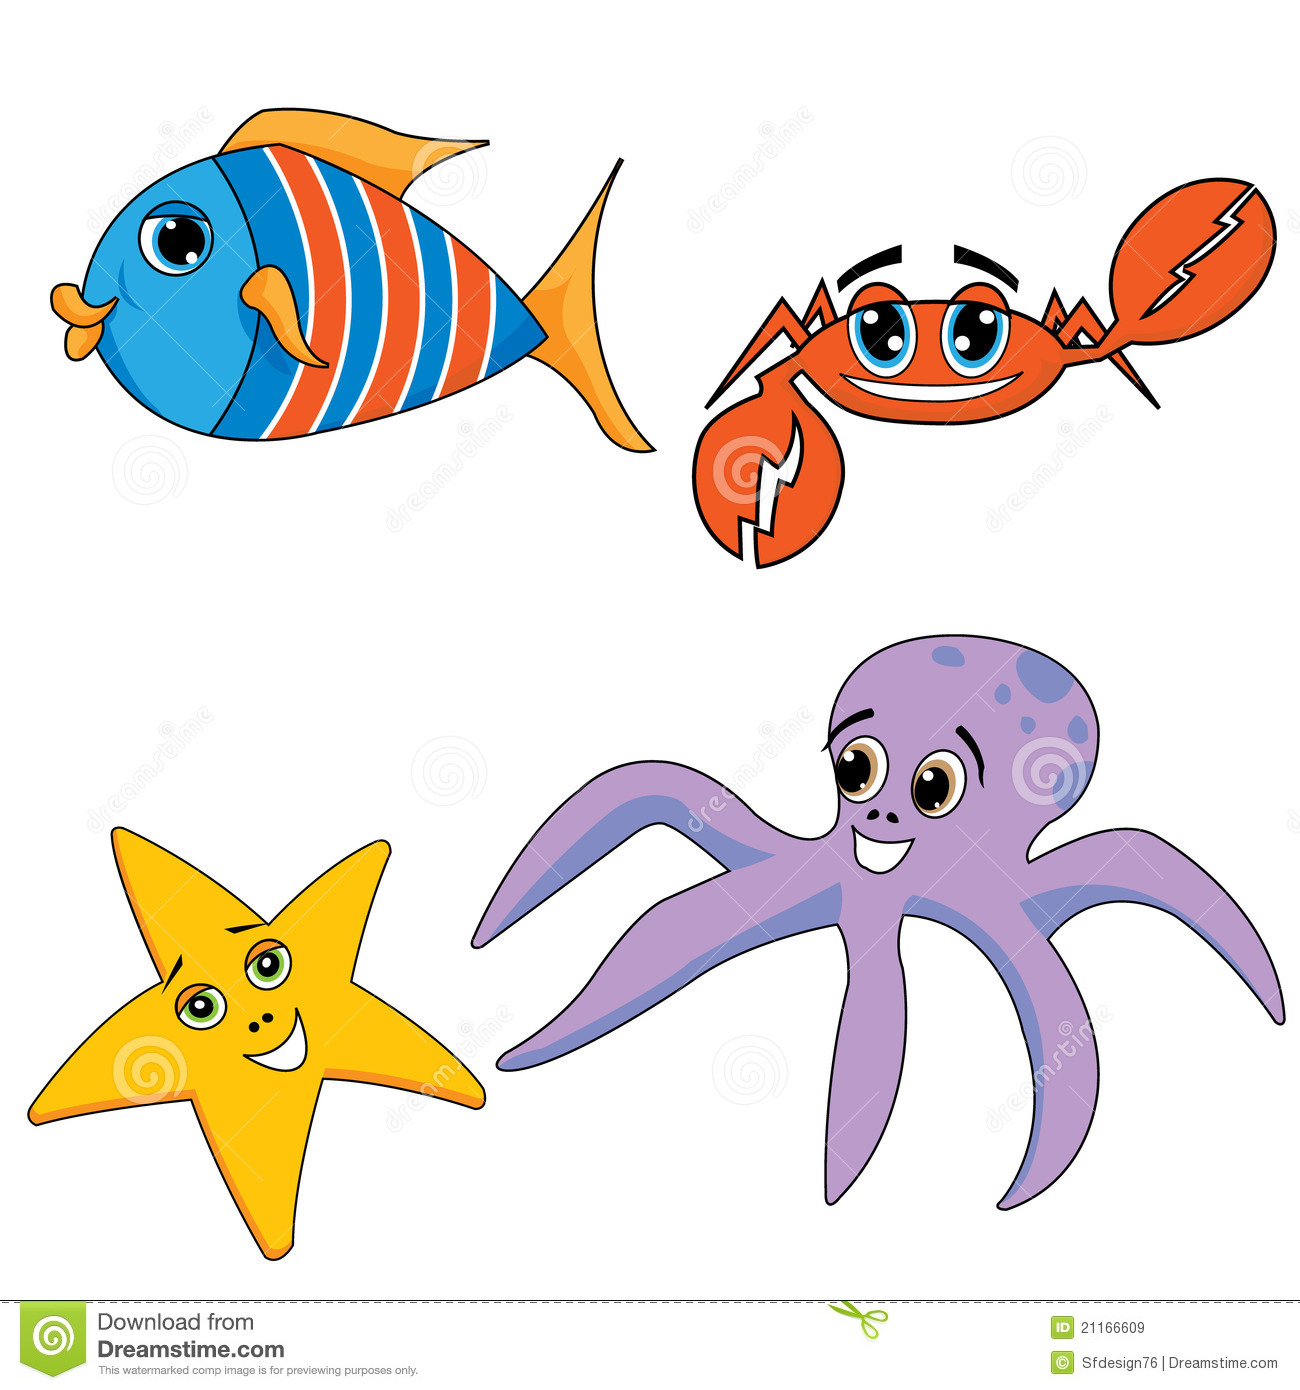 sea ocean animals royalty free stock images image 21166609